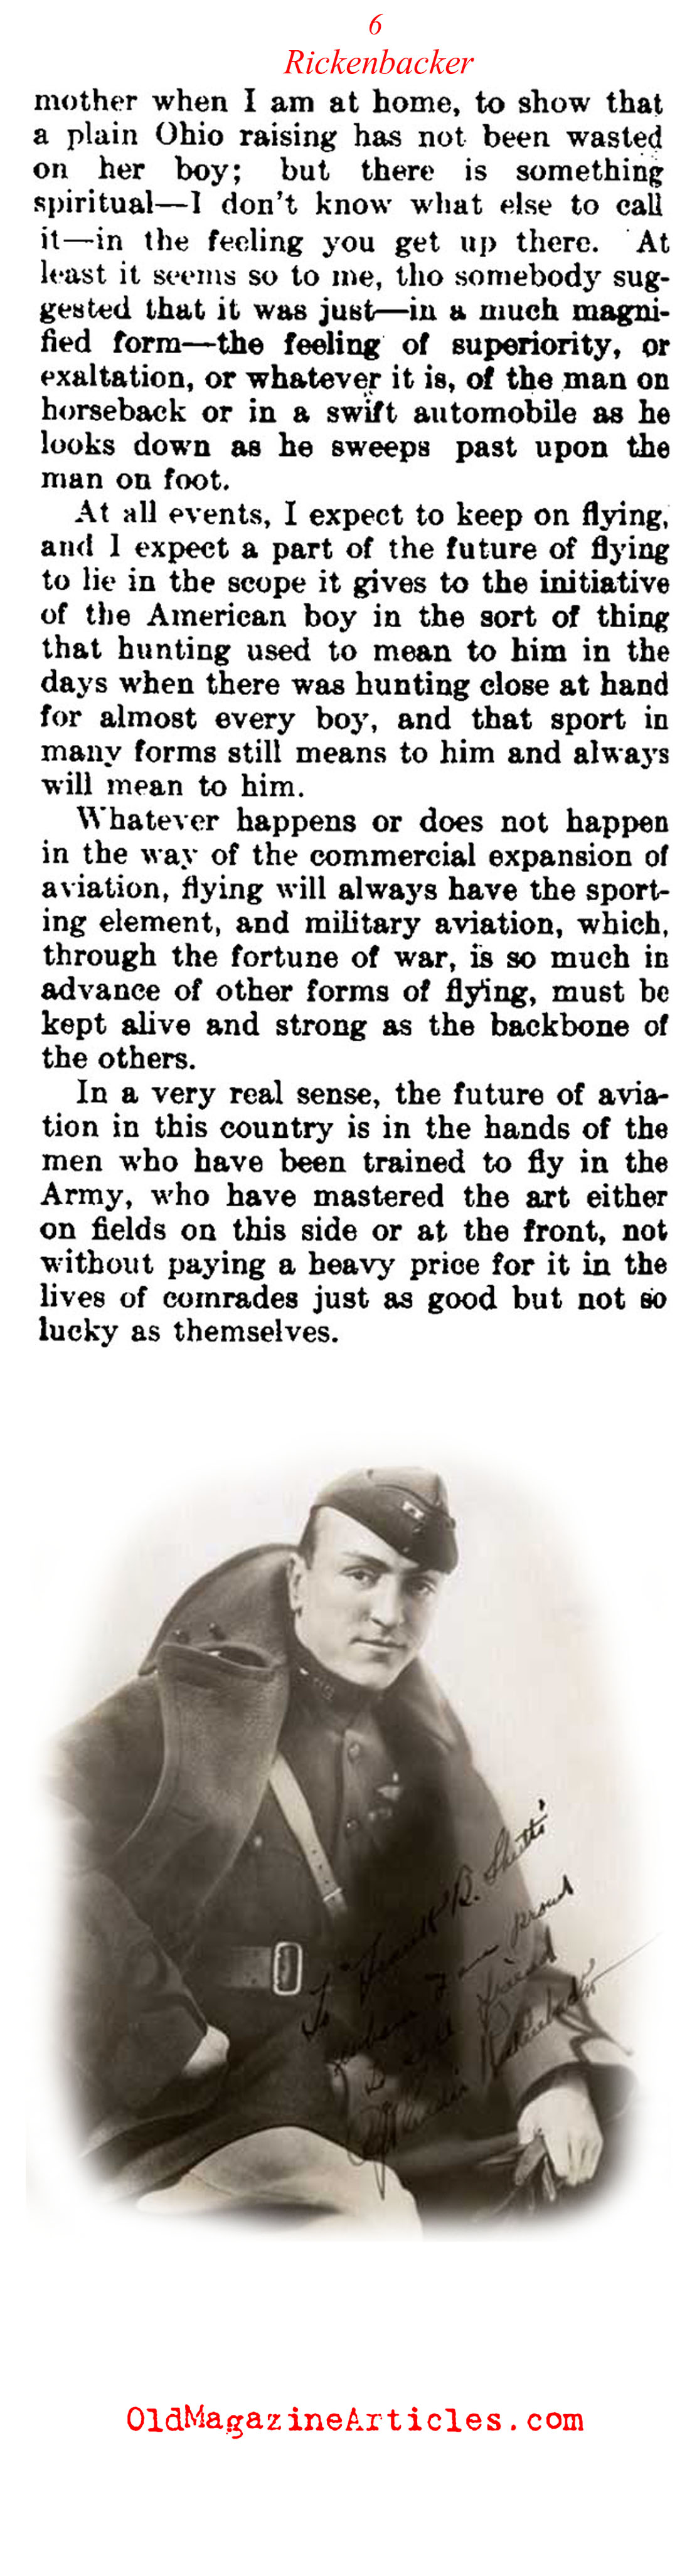 Captain Eddy Rickenbacker: Ace of Aces (The Literary Digest, 1919)